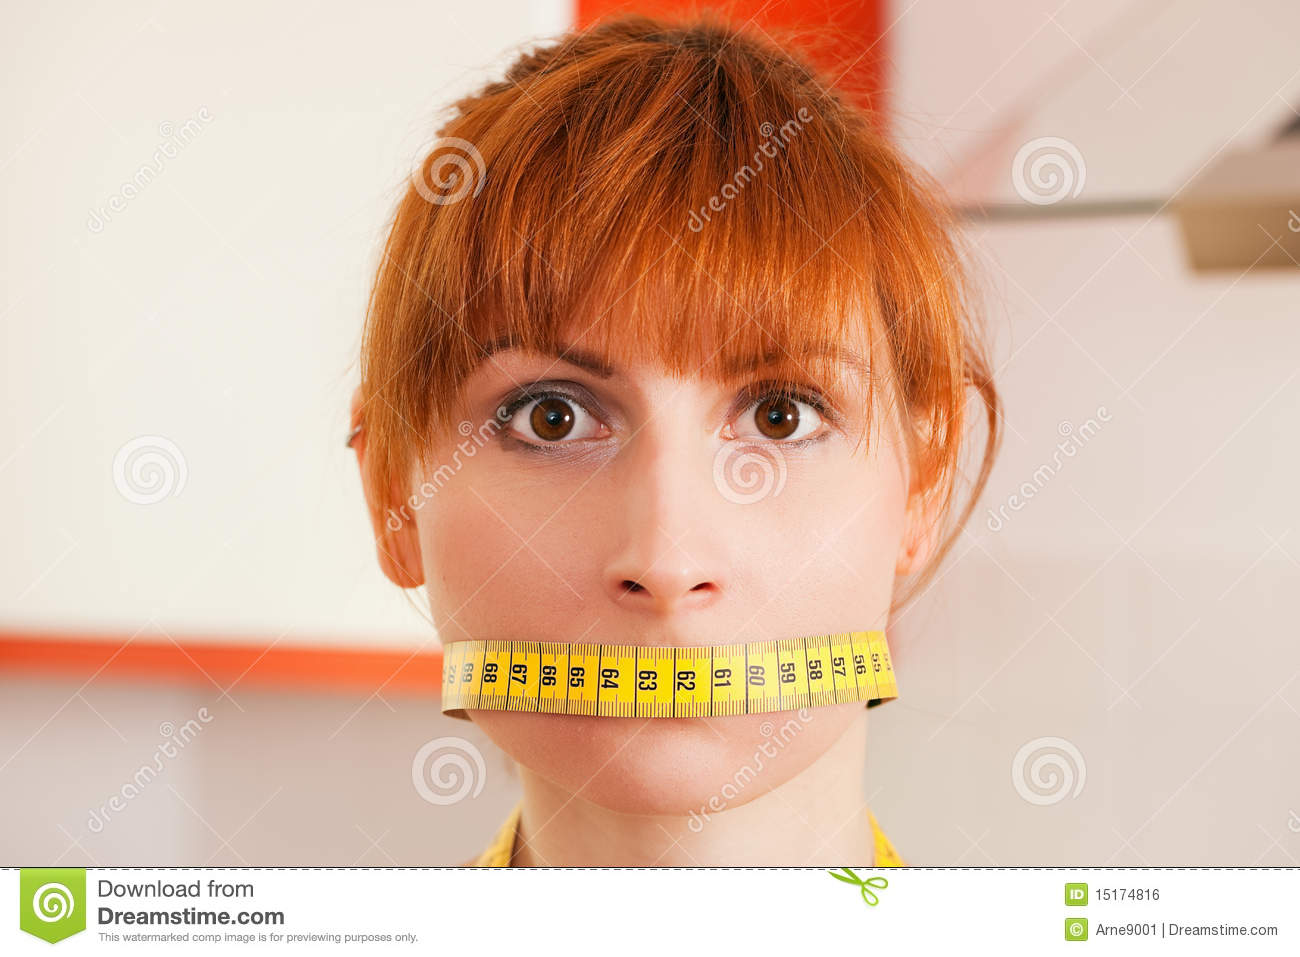 Woman Gagged By A Tape Measure Royalty Free Stock Image - Image